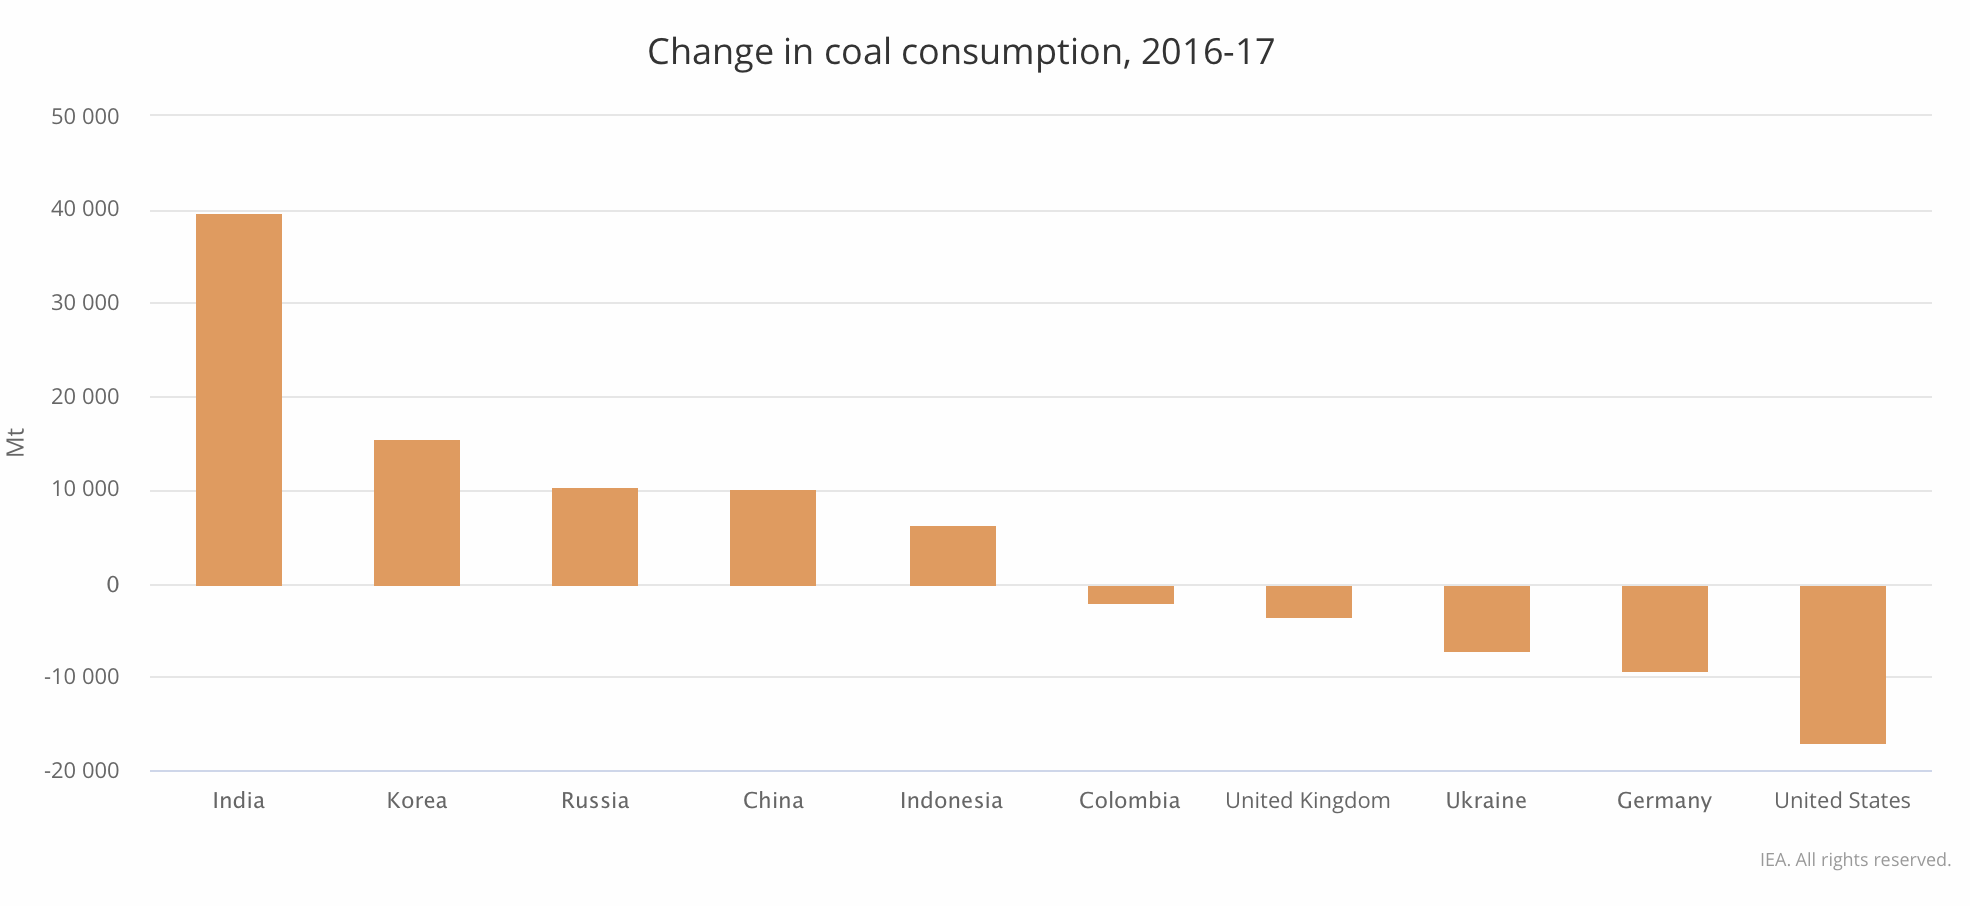 Source: International Energy Agency, 2019